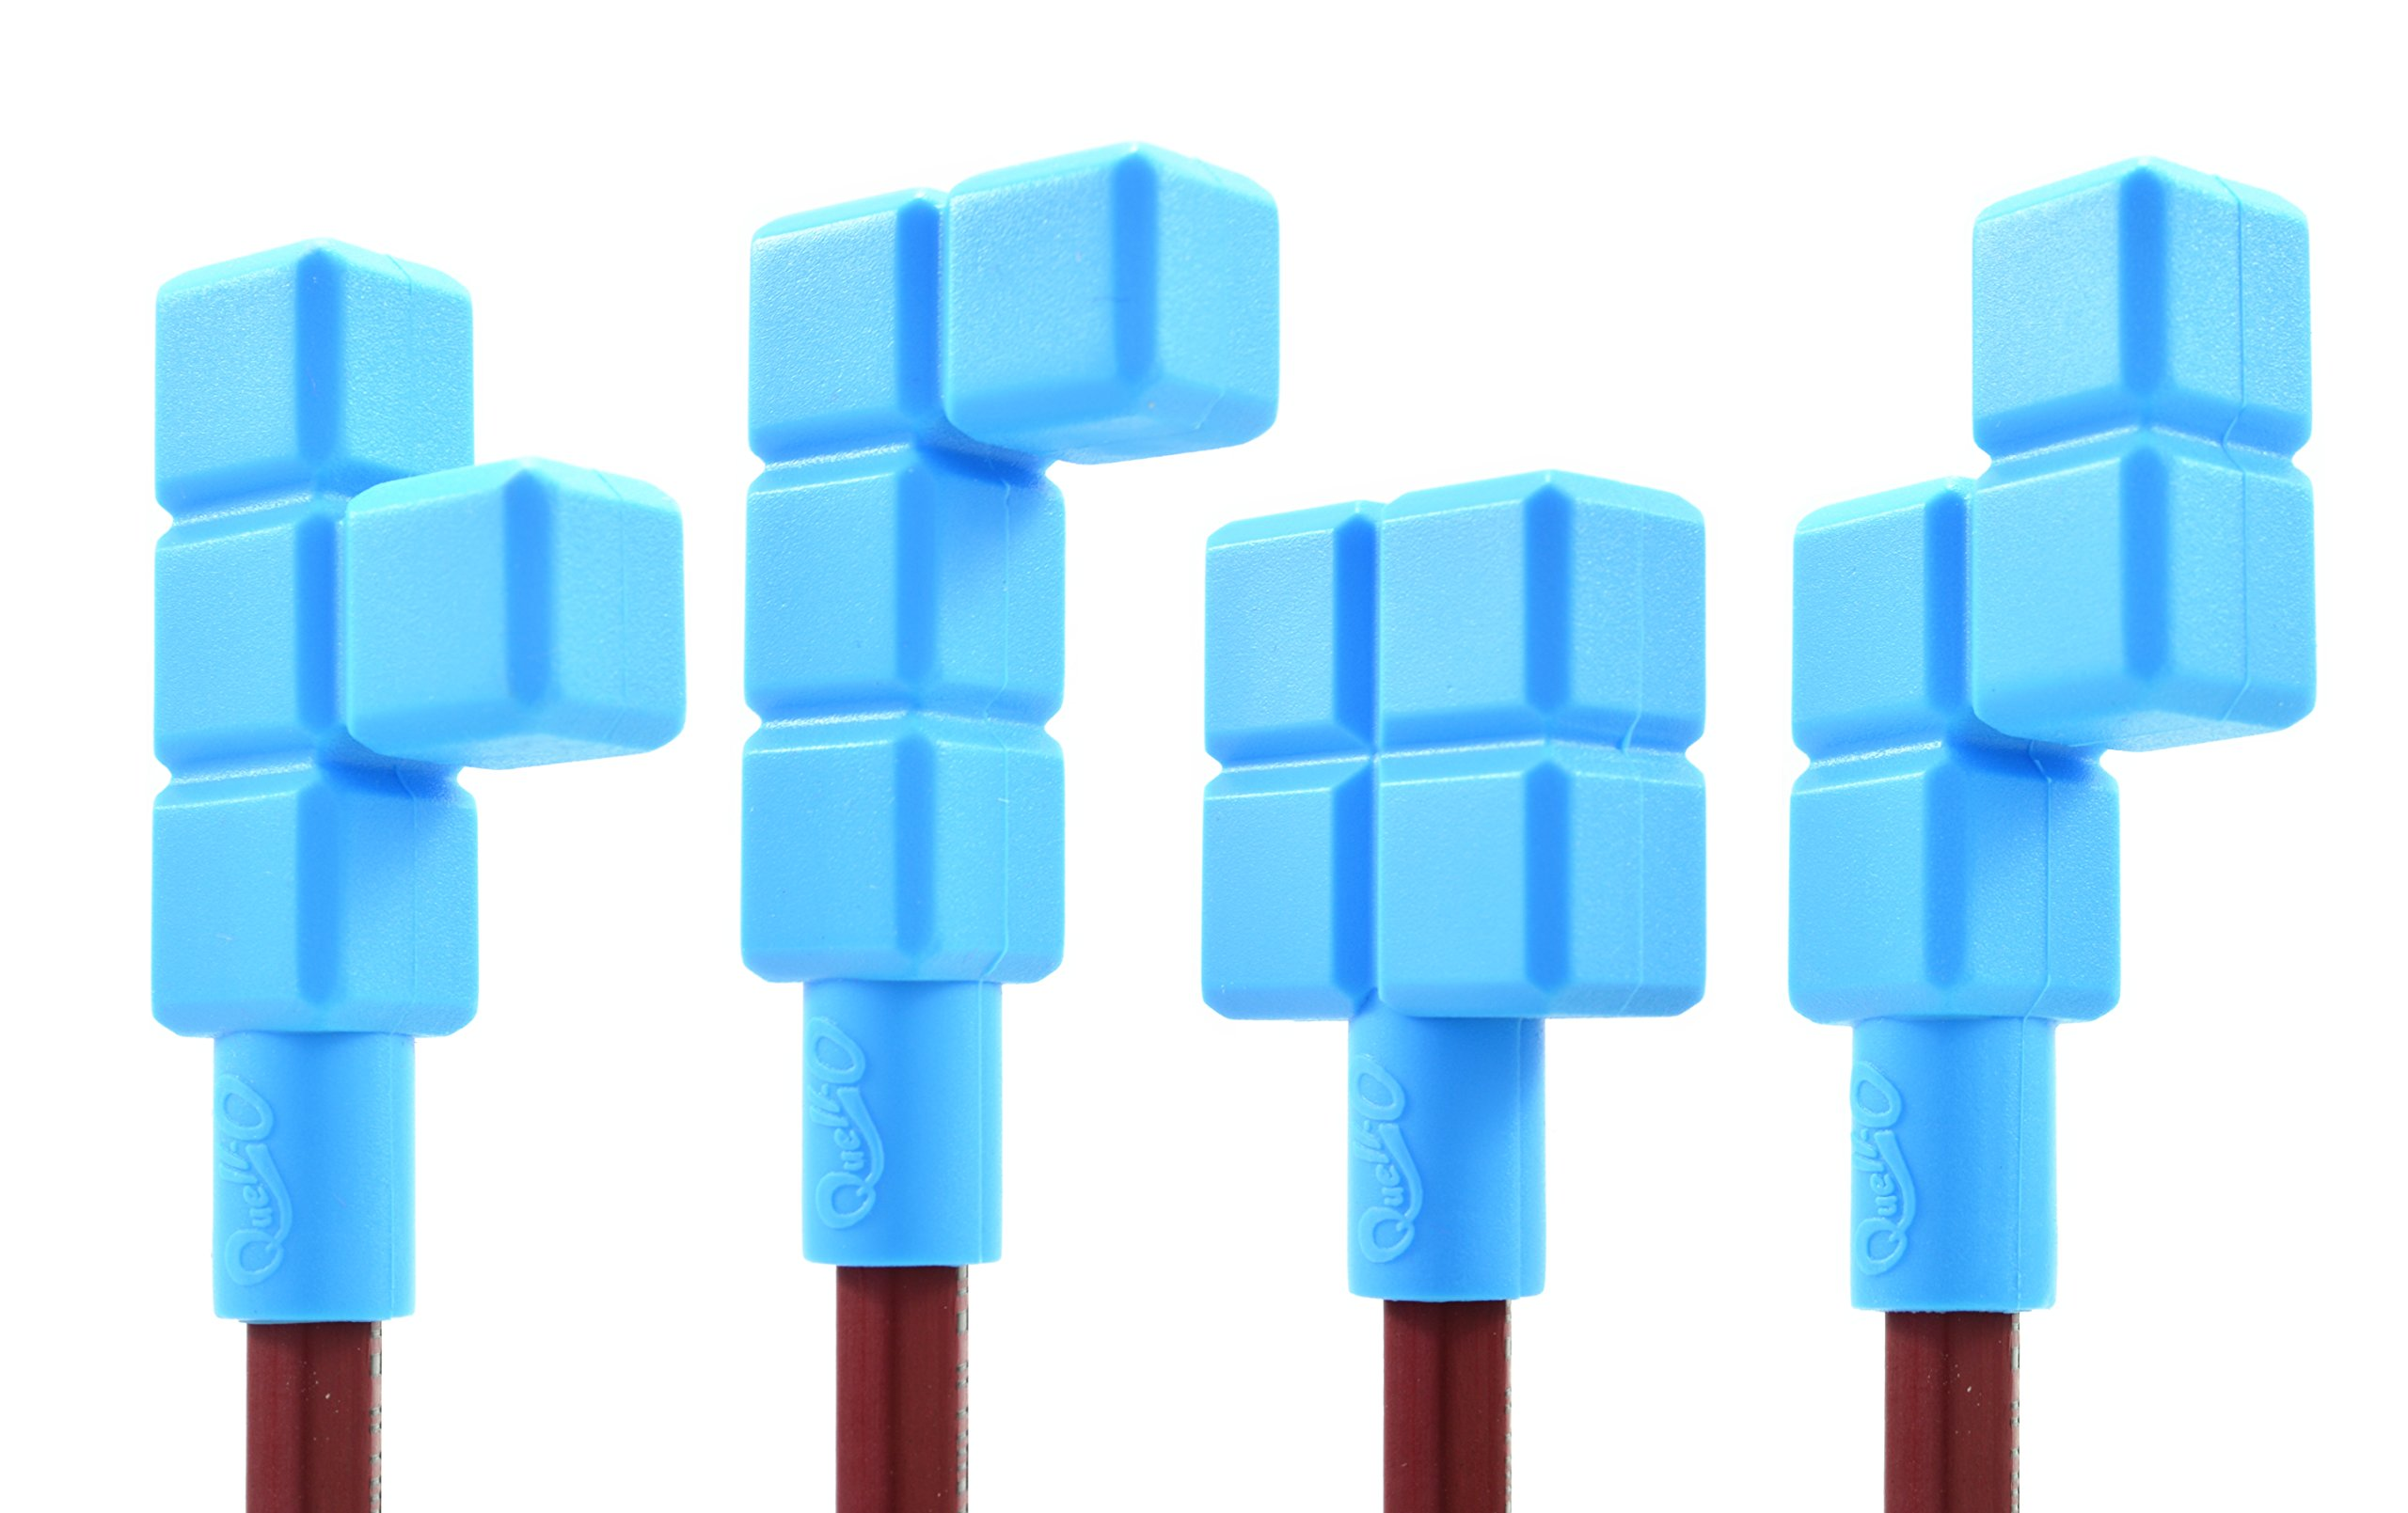 Quad-Blockz Pencil Toppers 4-Pack Chew & Fidget Tool - Sensory Stimulation & Development For Mild Chewers - Tough, Blue - by Quell-O